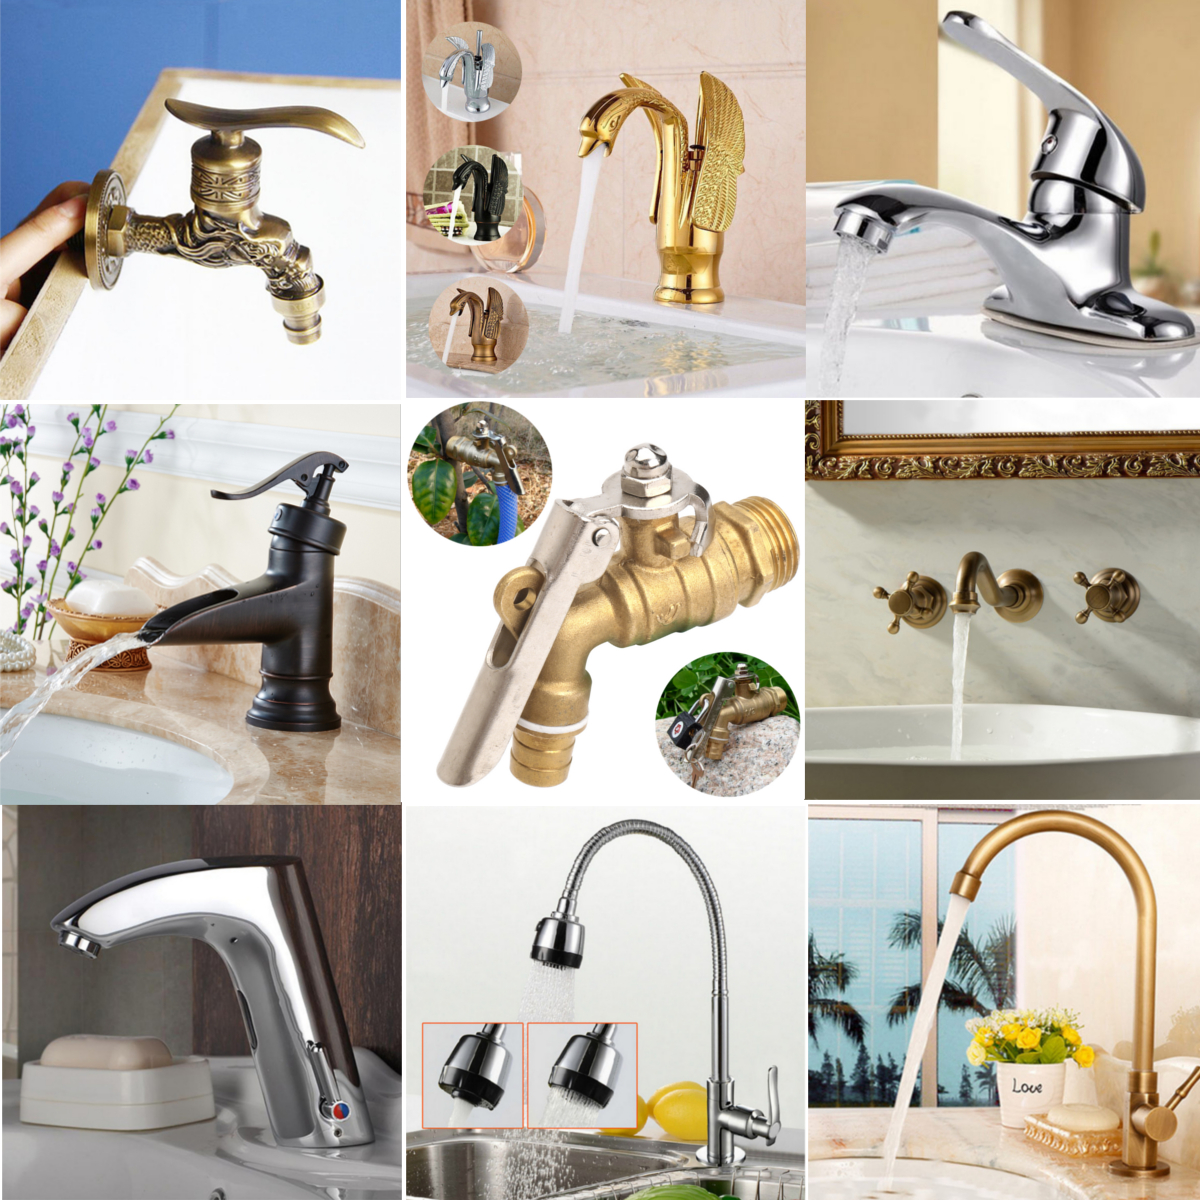 Modern Kitchen Bathroom Sink Pull Out Spray Mixer Tap Brushed Steel